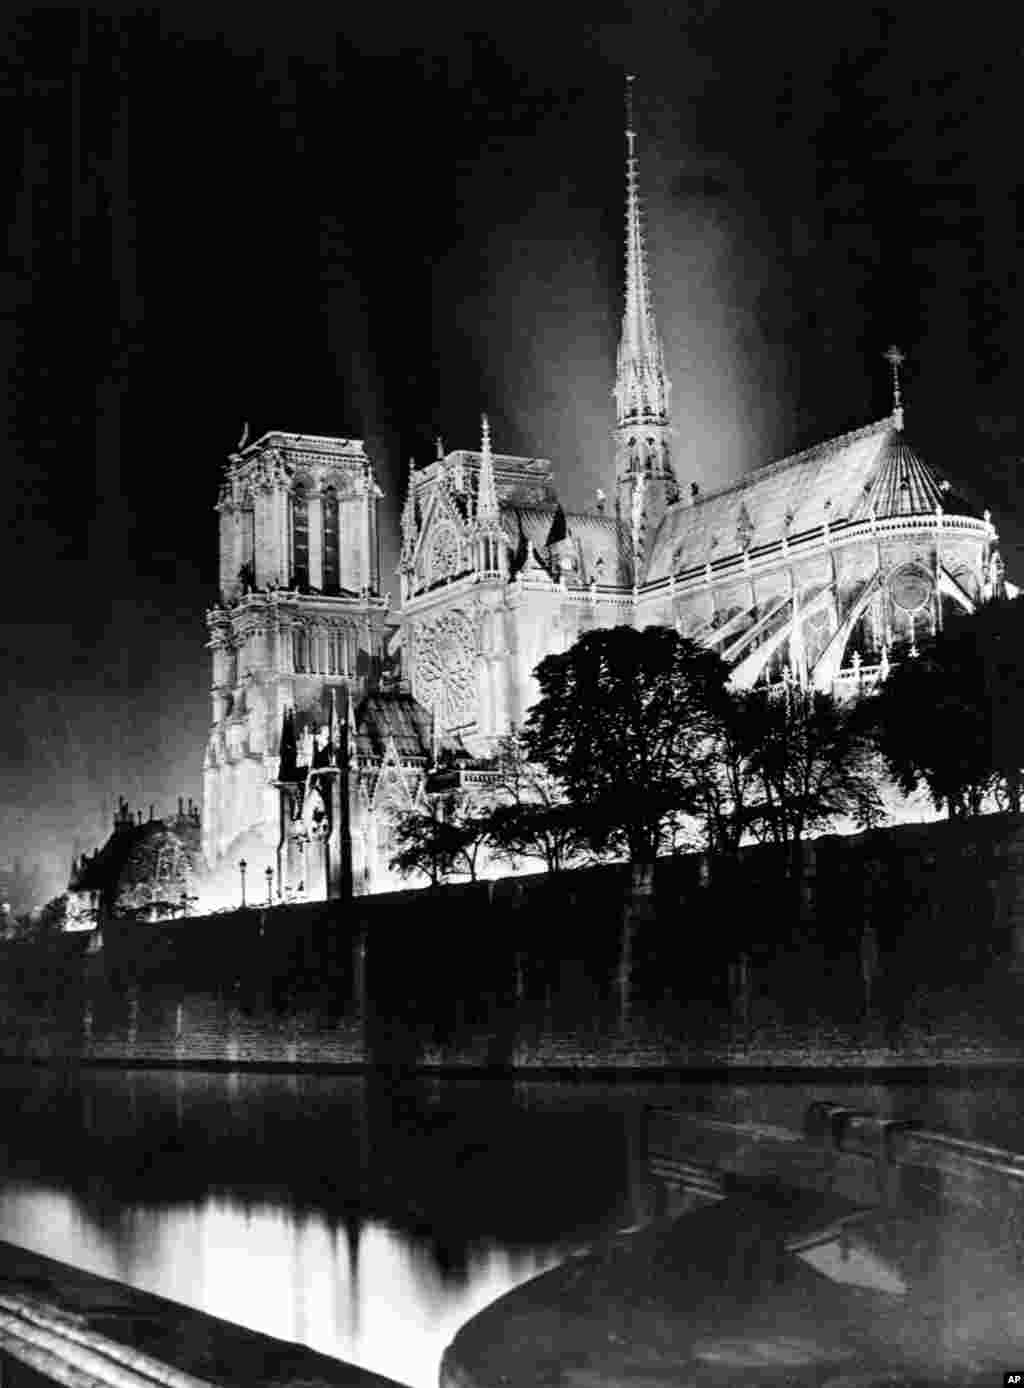 A nighttime view in 1933.